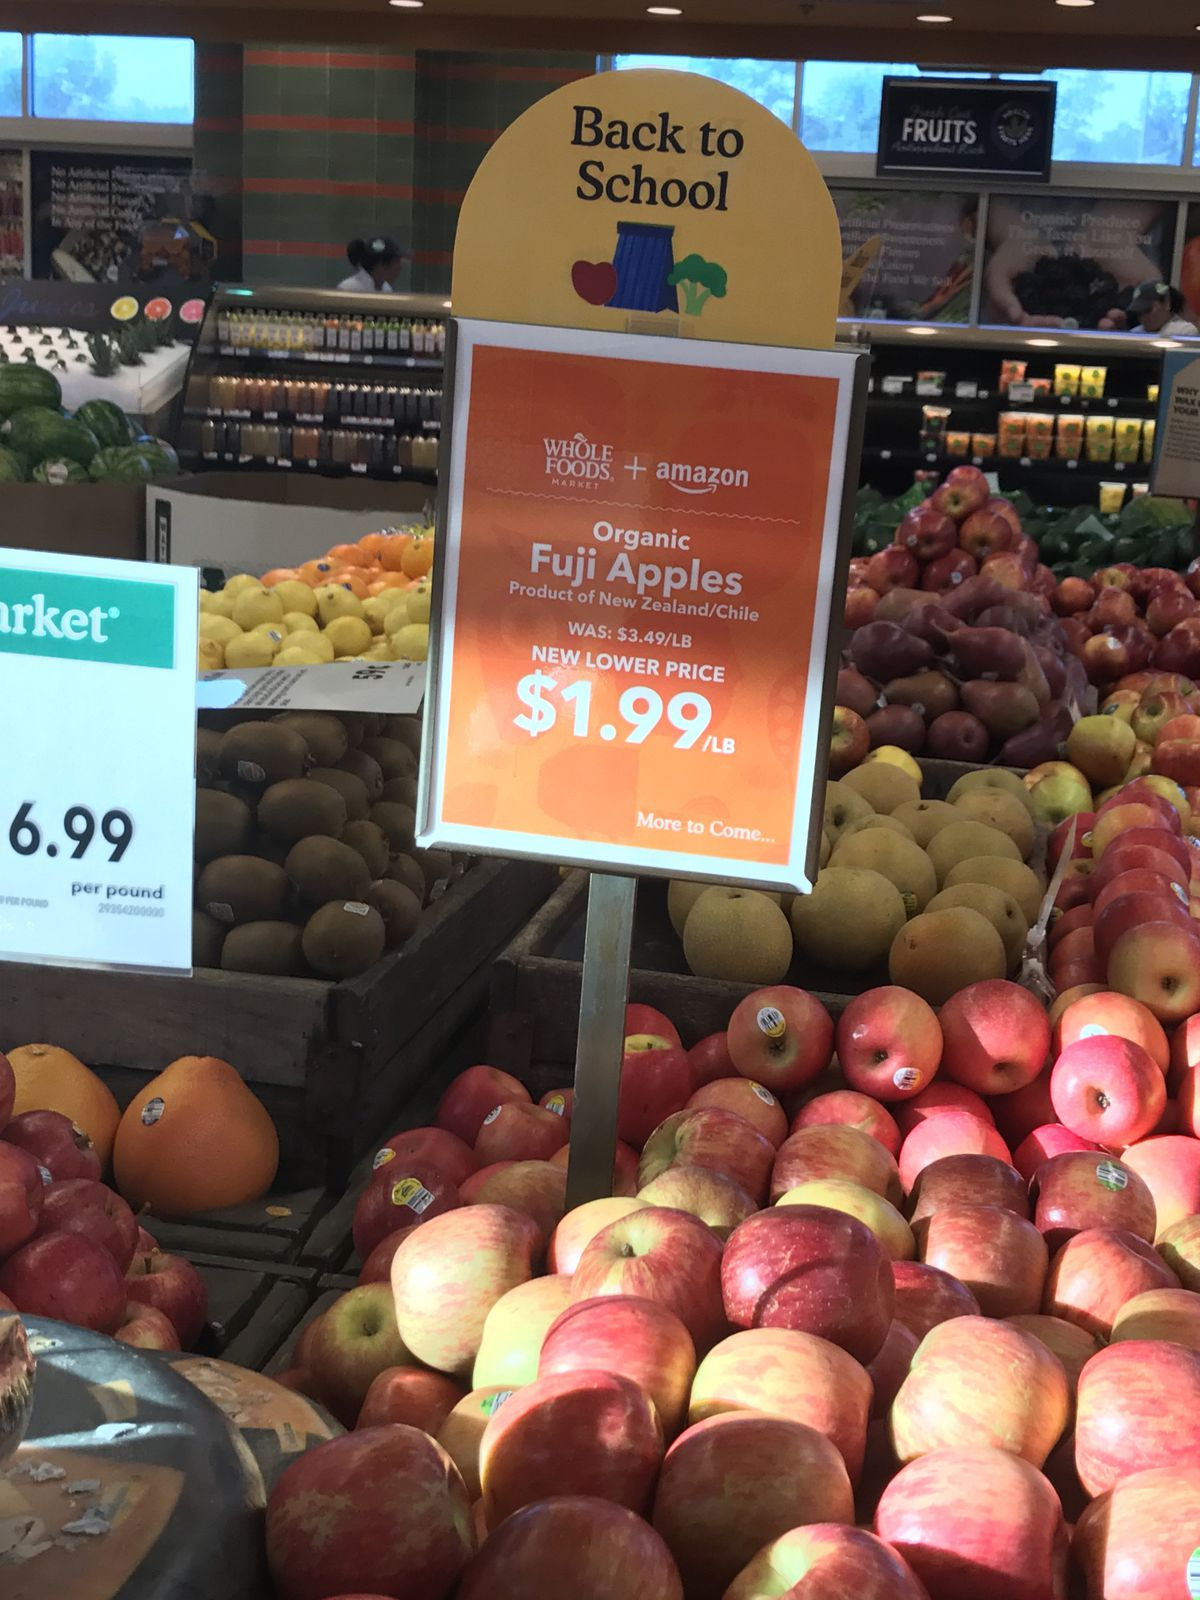 A discount sign for apples inside Whole Foods stores on the first day of Amazon ownership.